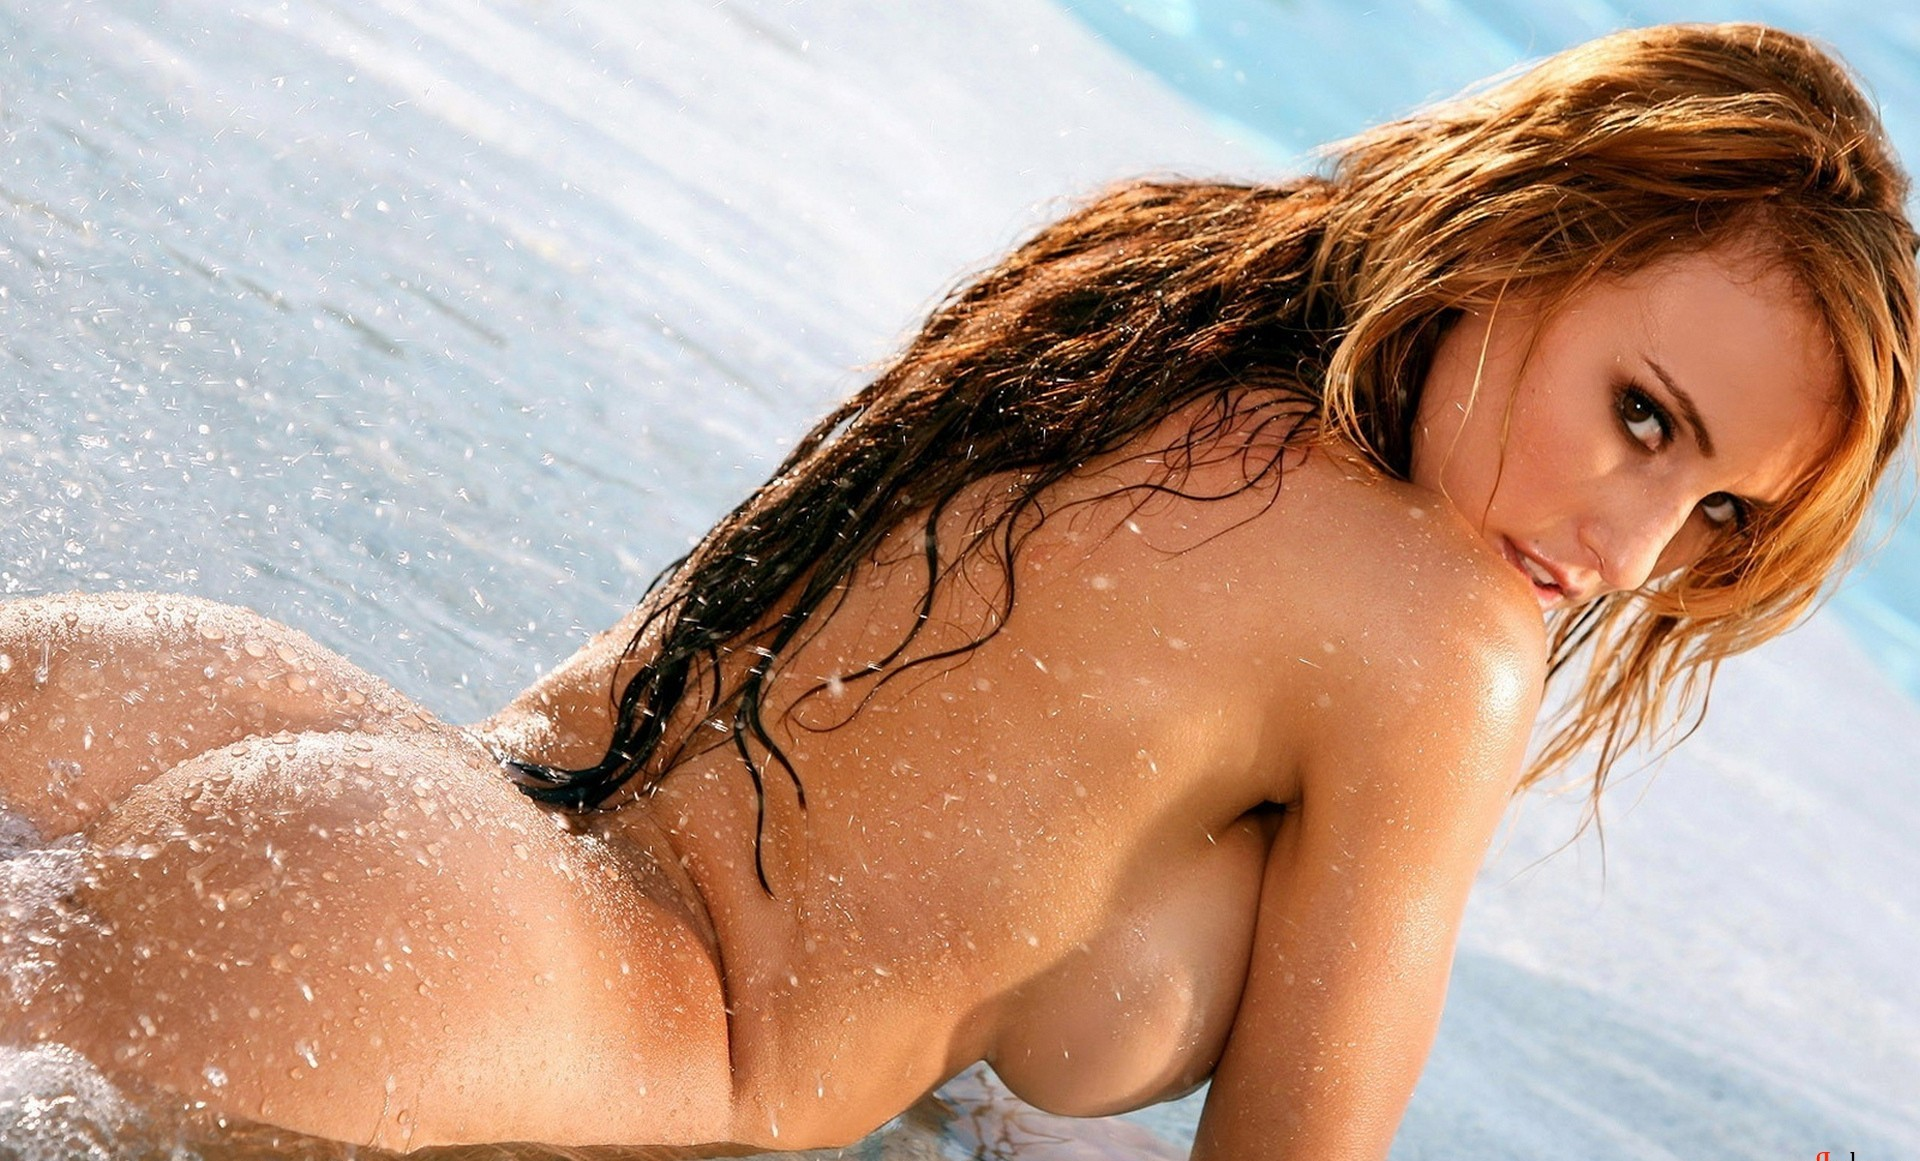 Girls naked getting wet #1